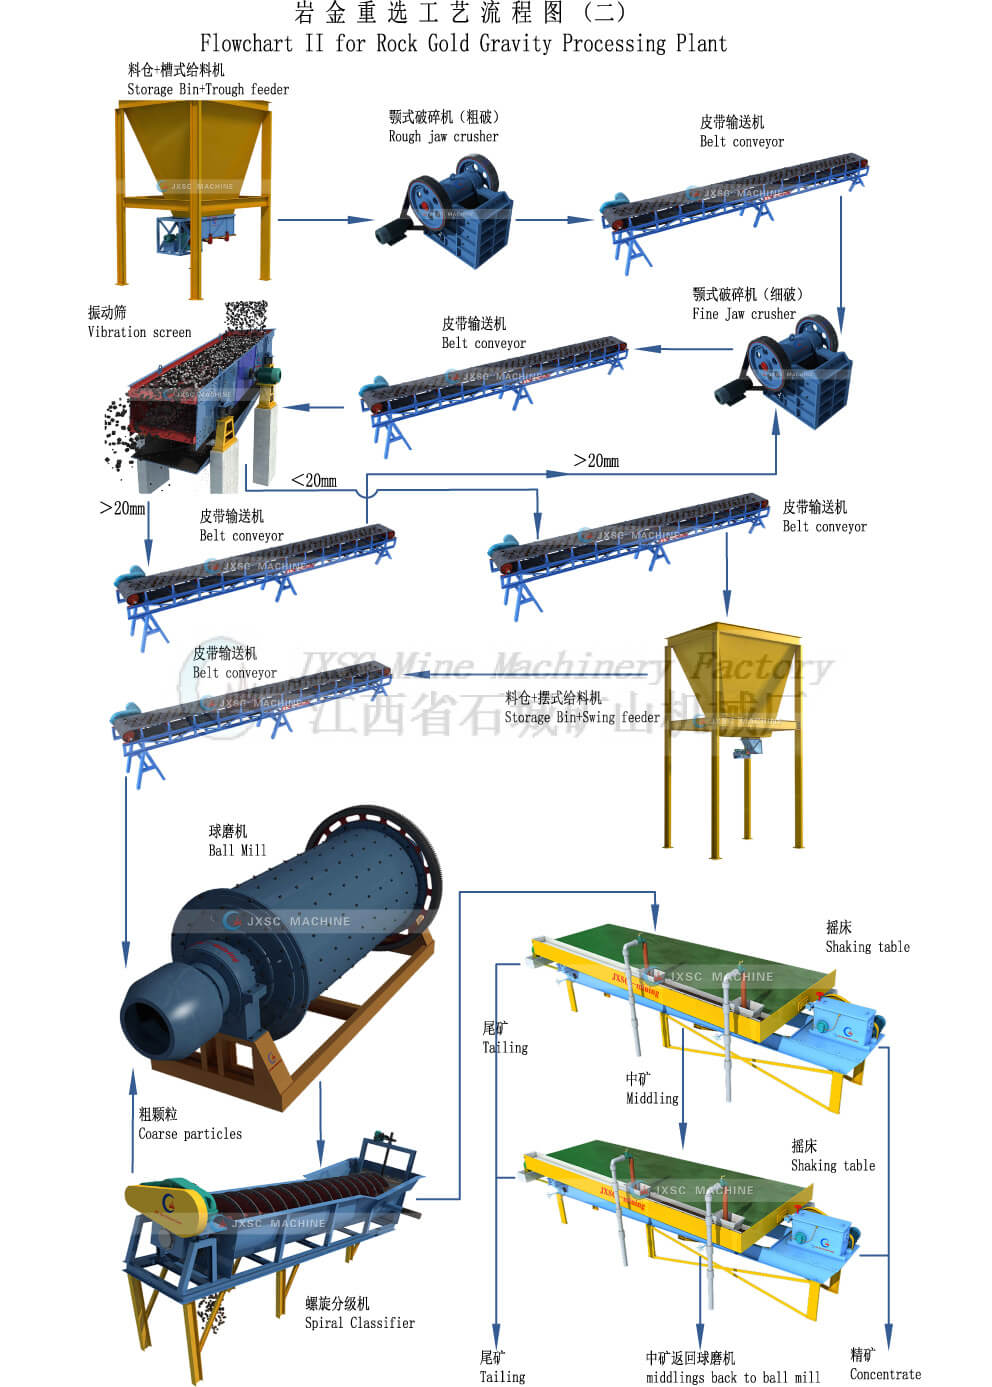 Roc-Gold-Gravity-Processing-Plant